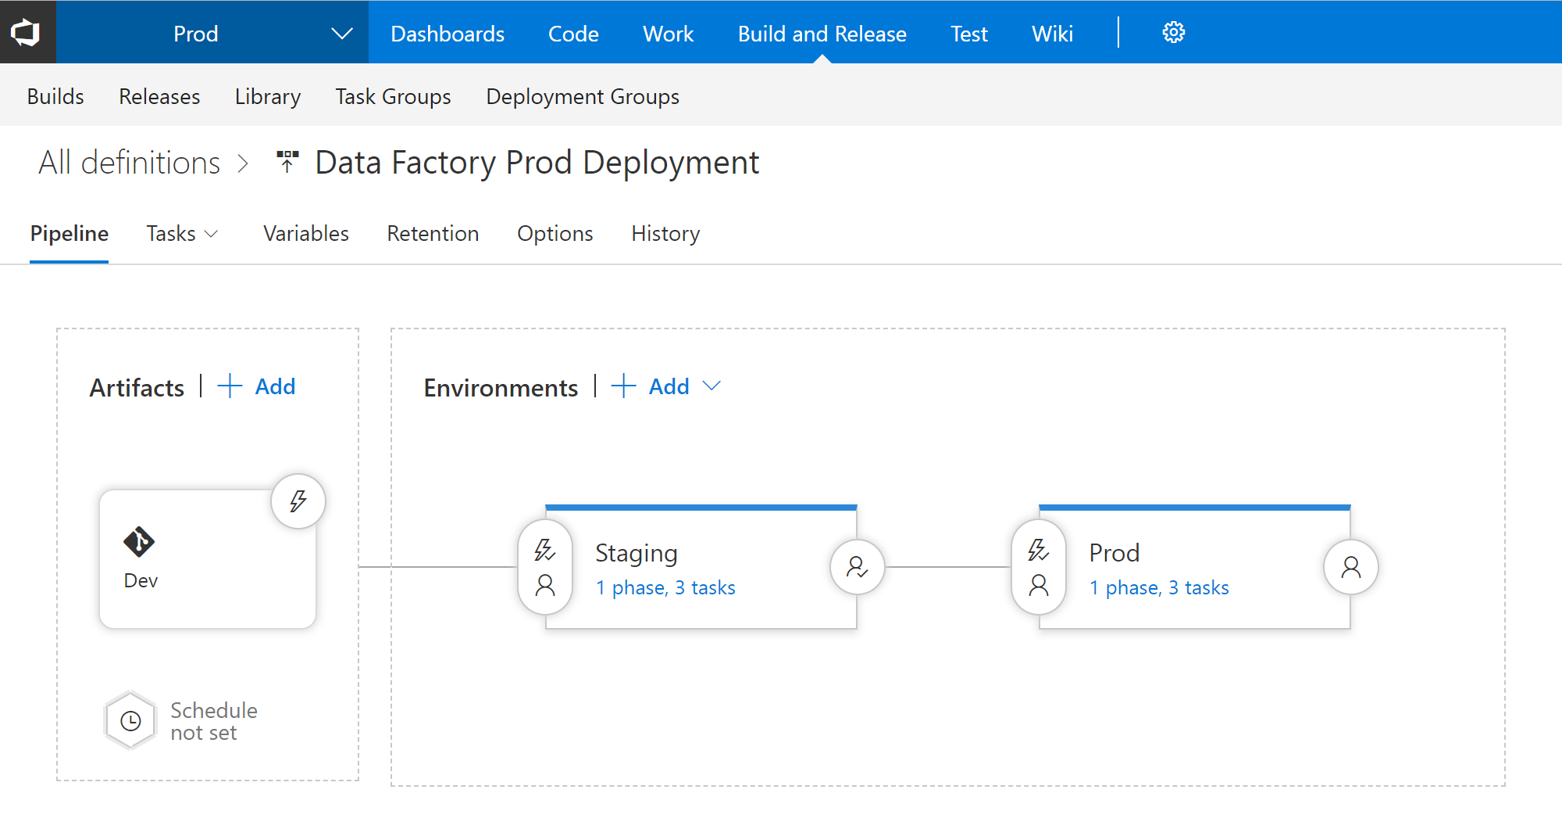 Data Factory Prod Deployment